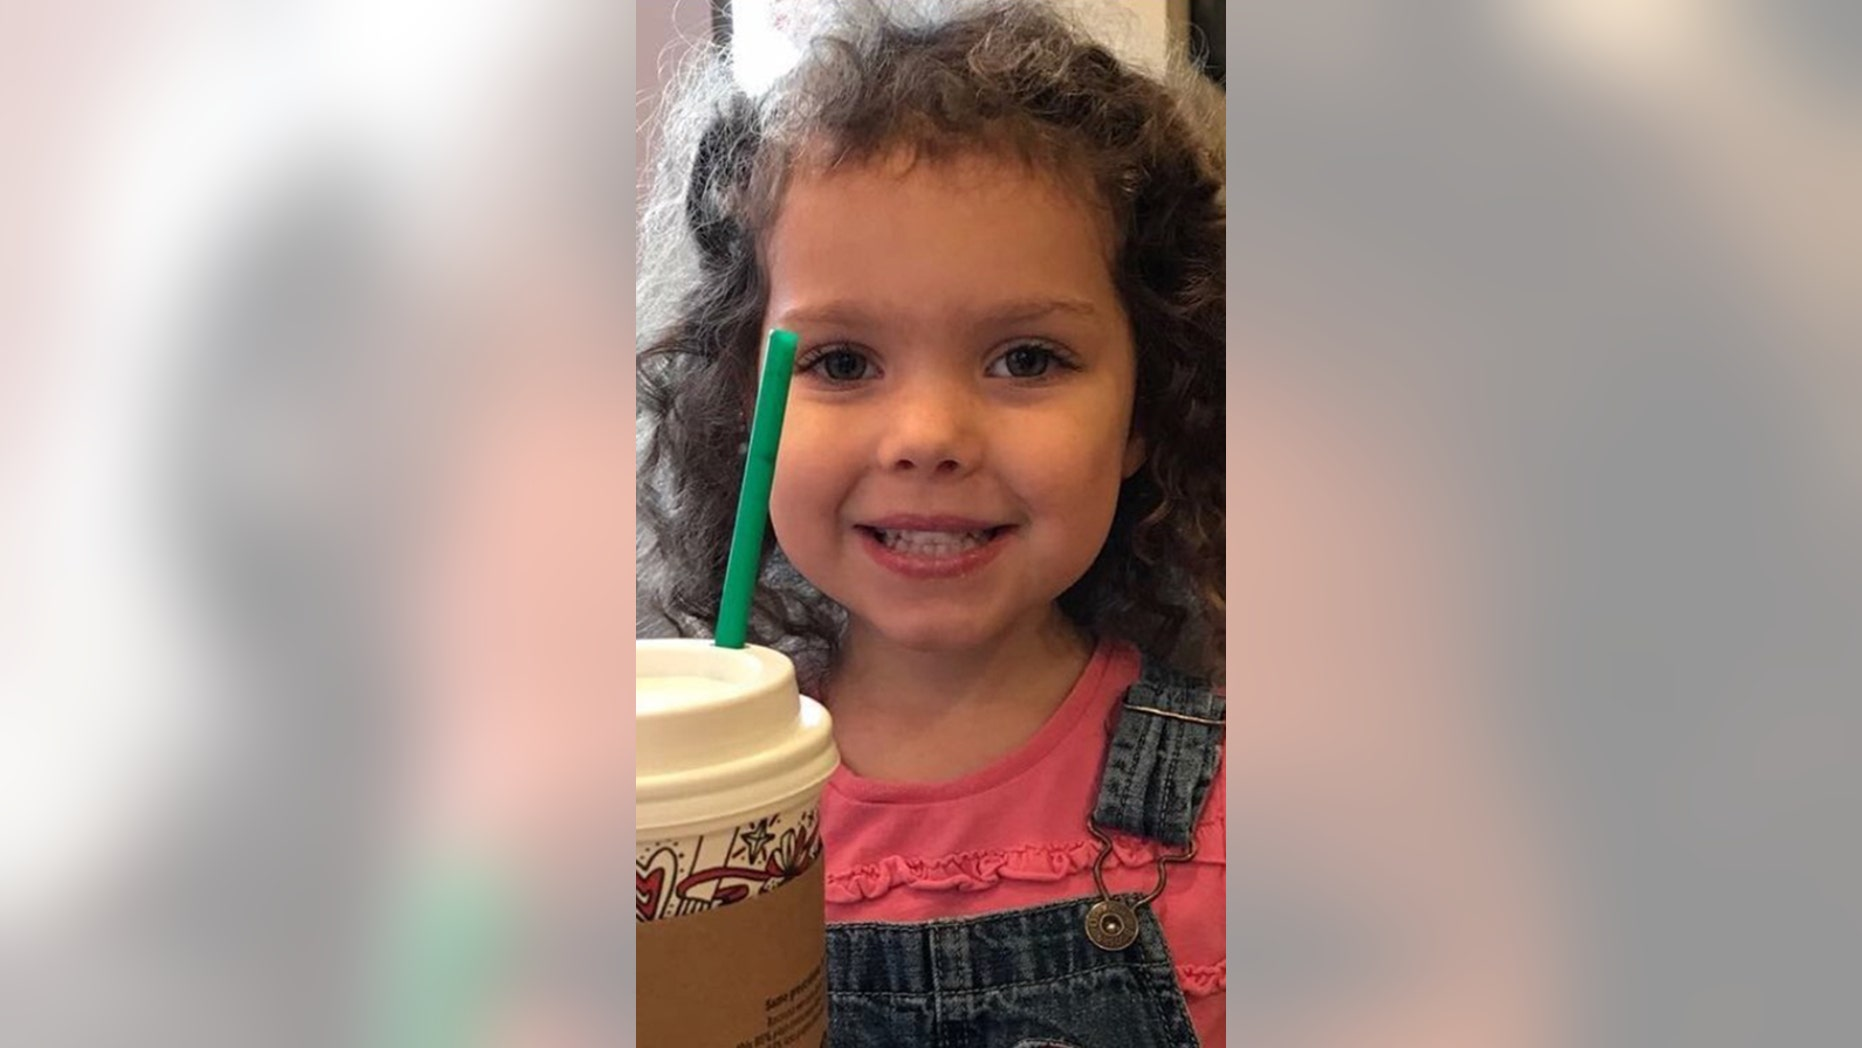 Heidi Renae Todd , 4, was reported missing from her home in South Carolina on Tuesday.